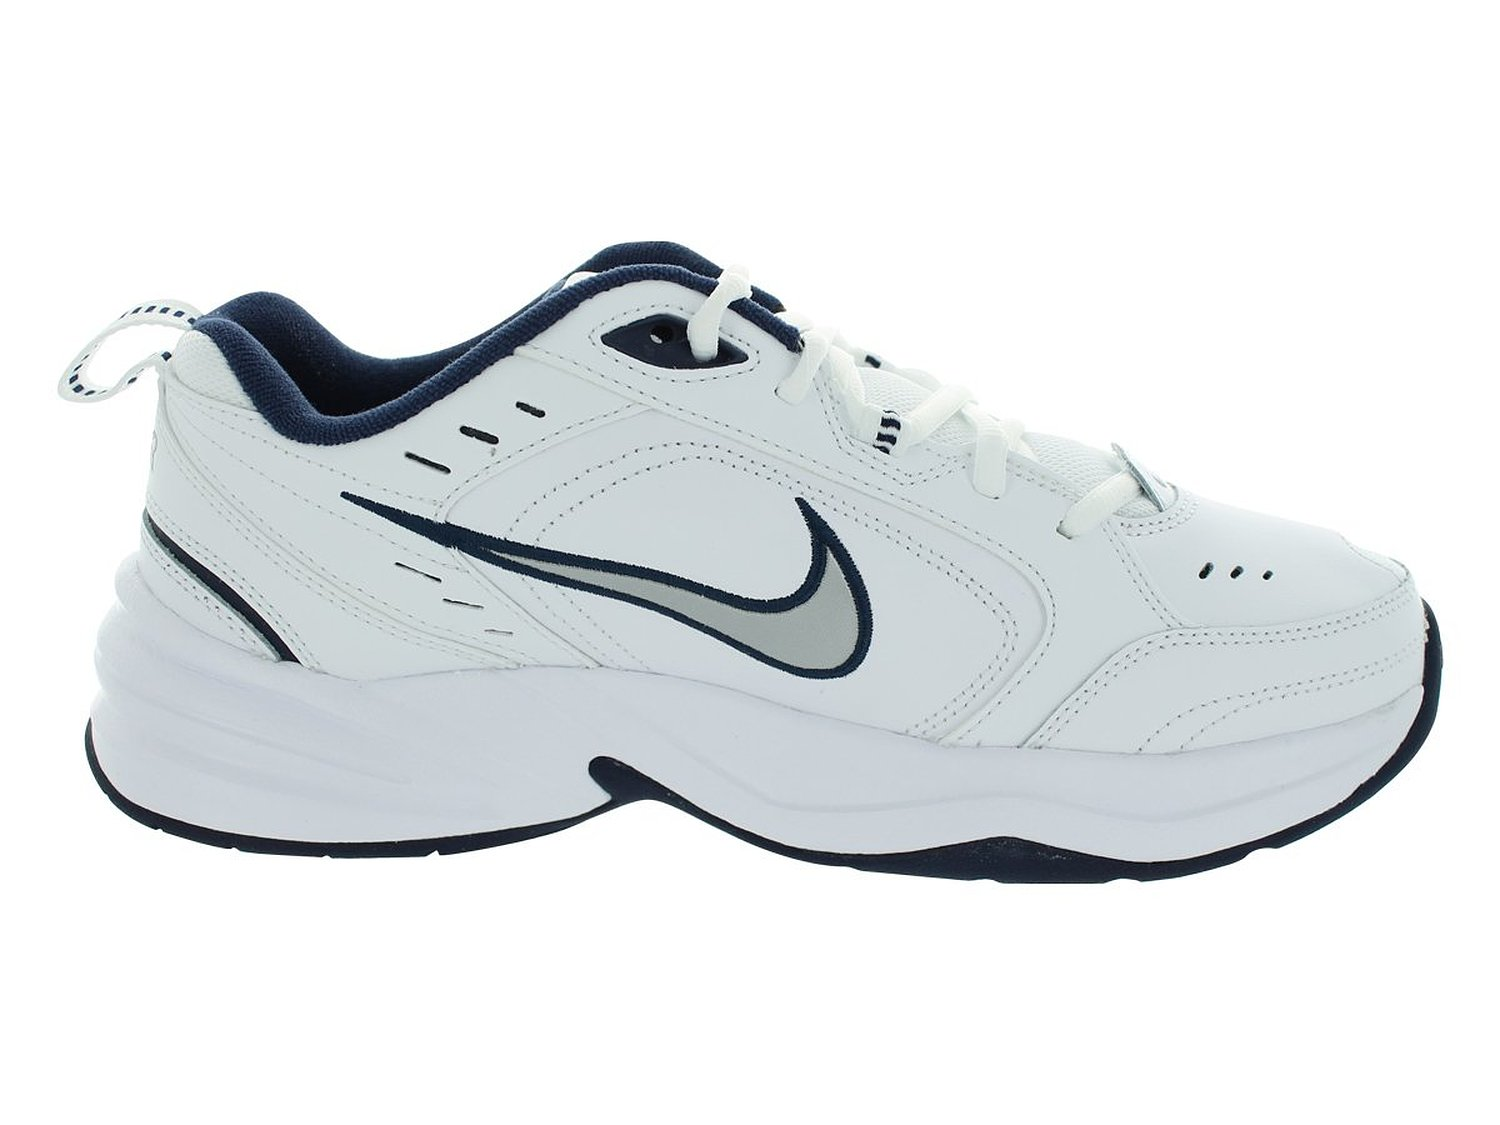 Nike Air Monarch 4 Medium Width Mens (11.5) WHITE/METALLIC SILVER -  Walmart.com